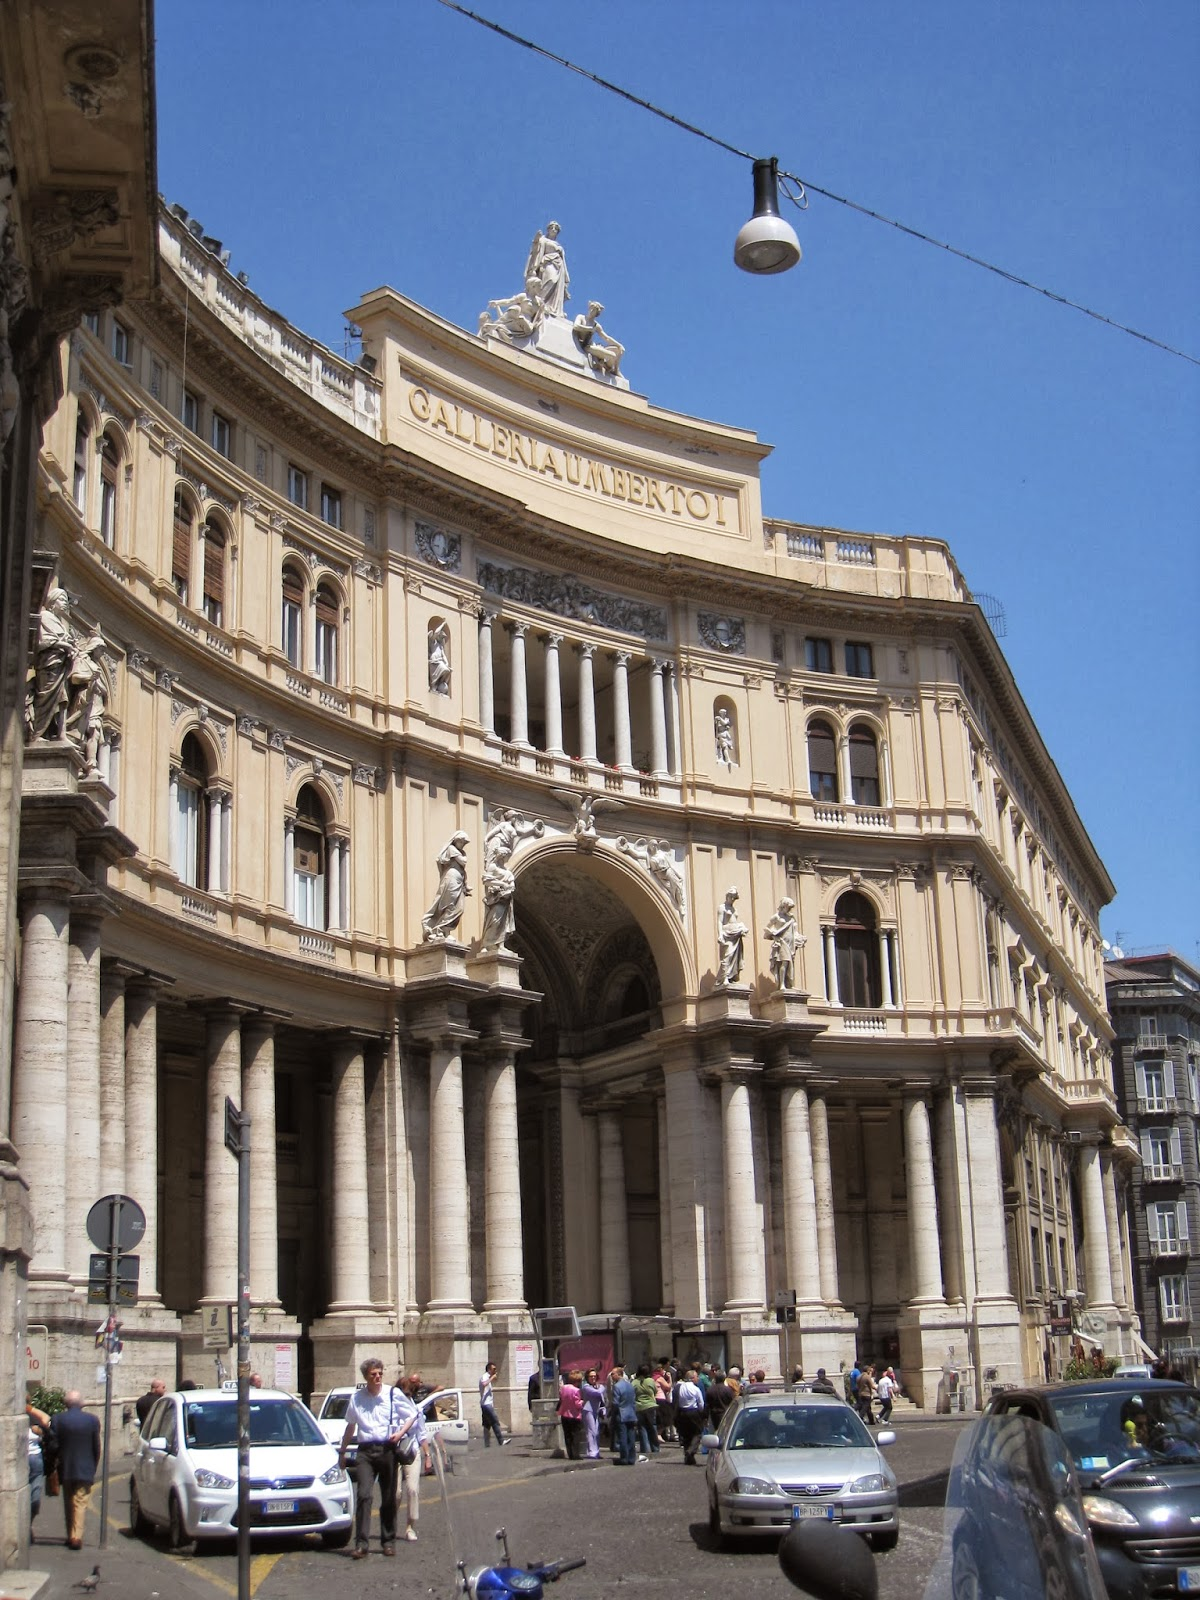 The-Shopping-Centre-Galleria-Umberto I-Naples-Italy-located-directed-across-from-the-San-Carlo-Opera-House